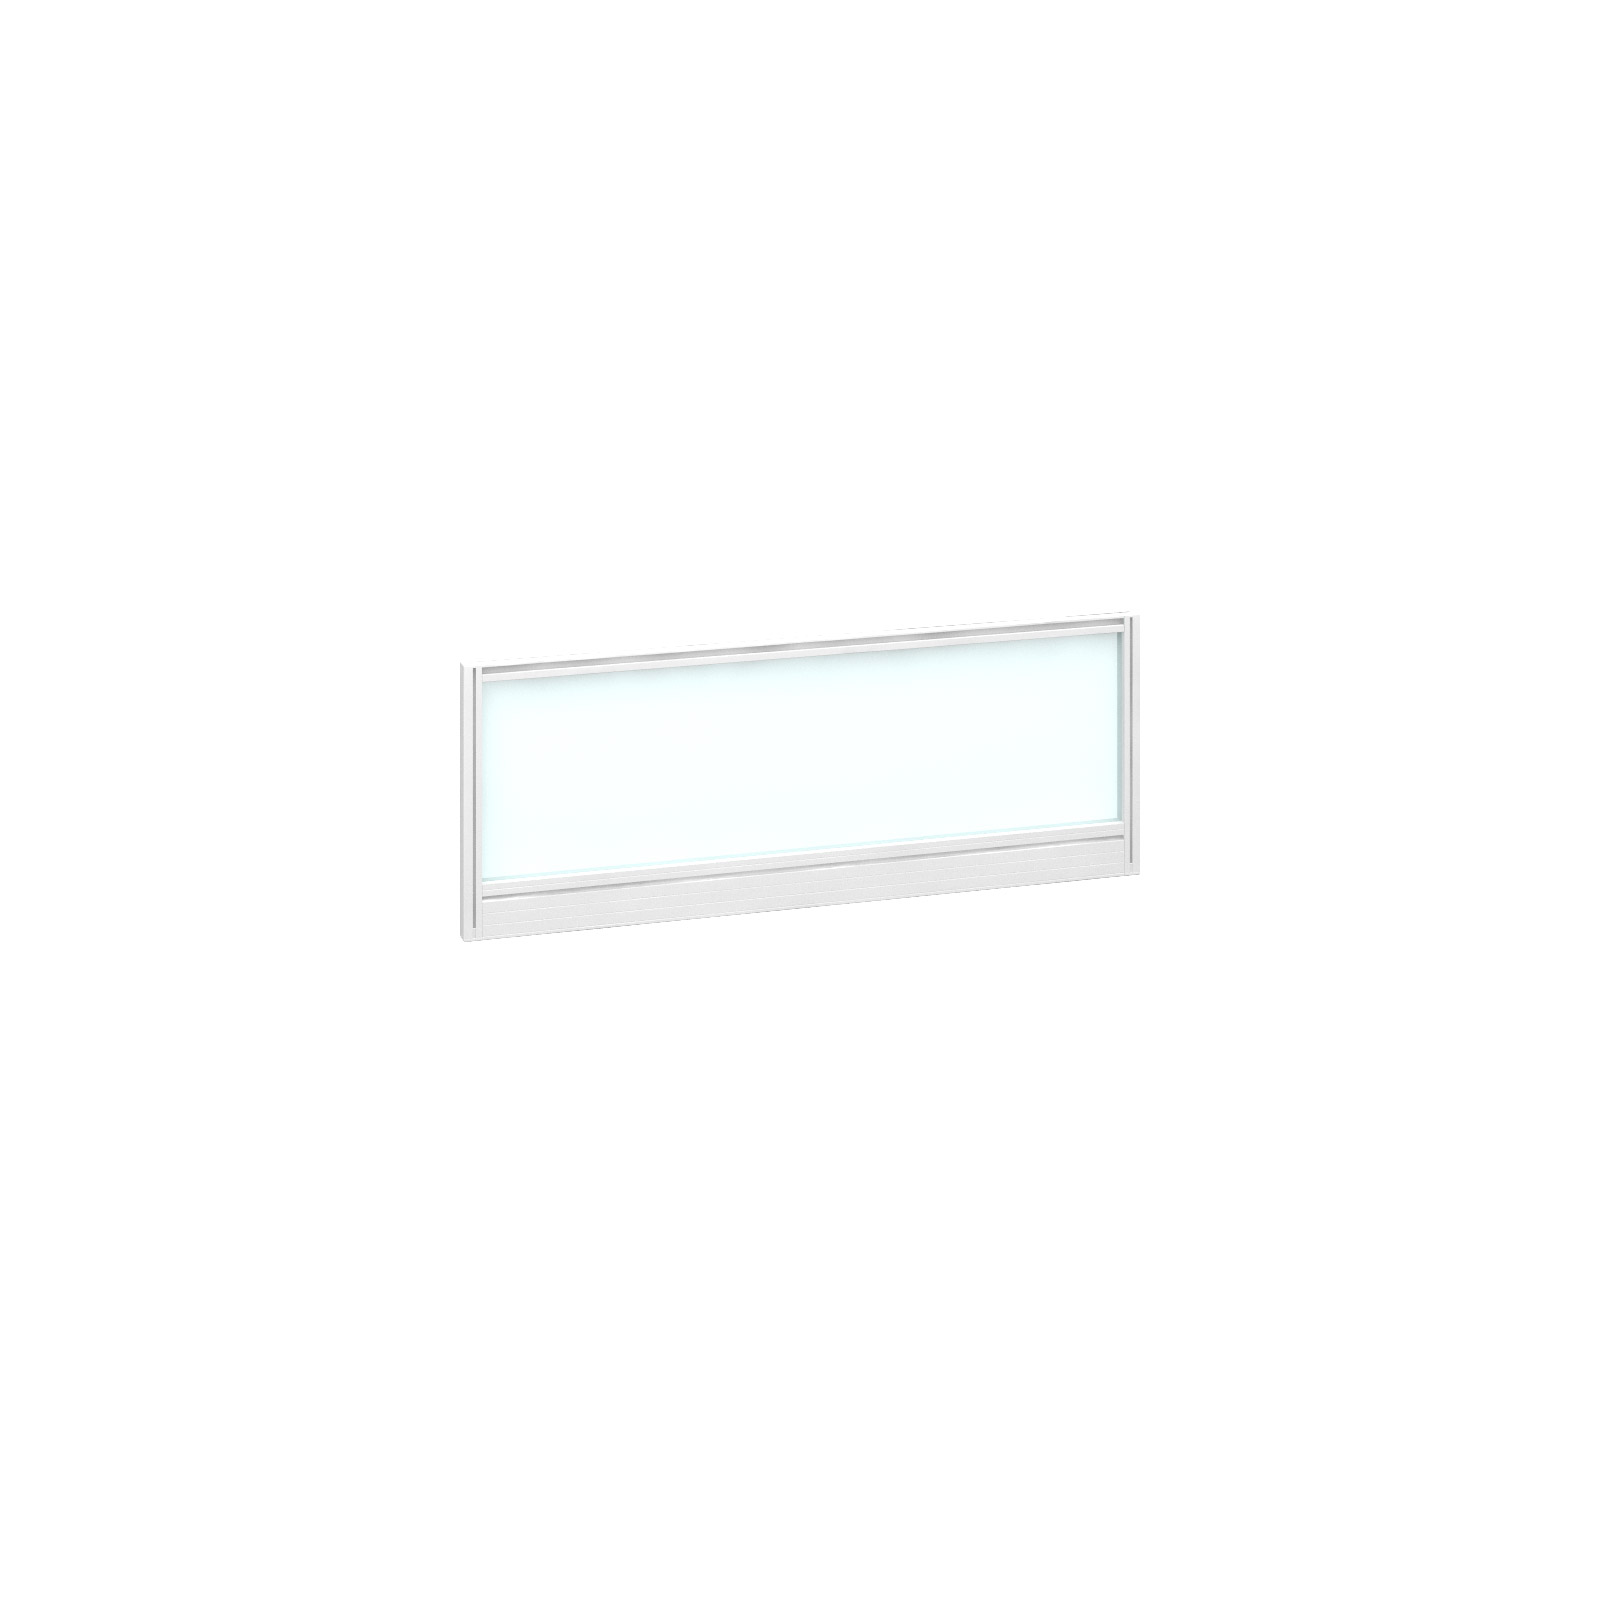 1000mm Deluxe Fully Glazed Rear Screen - White Frame - White Glazing